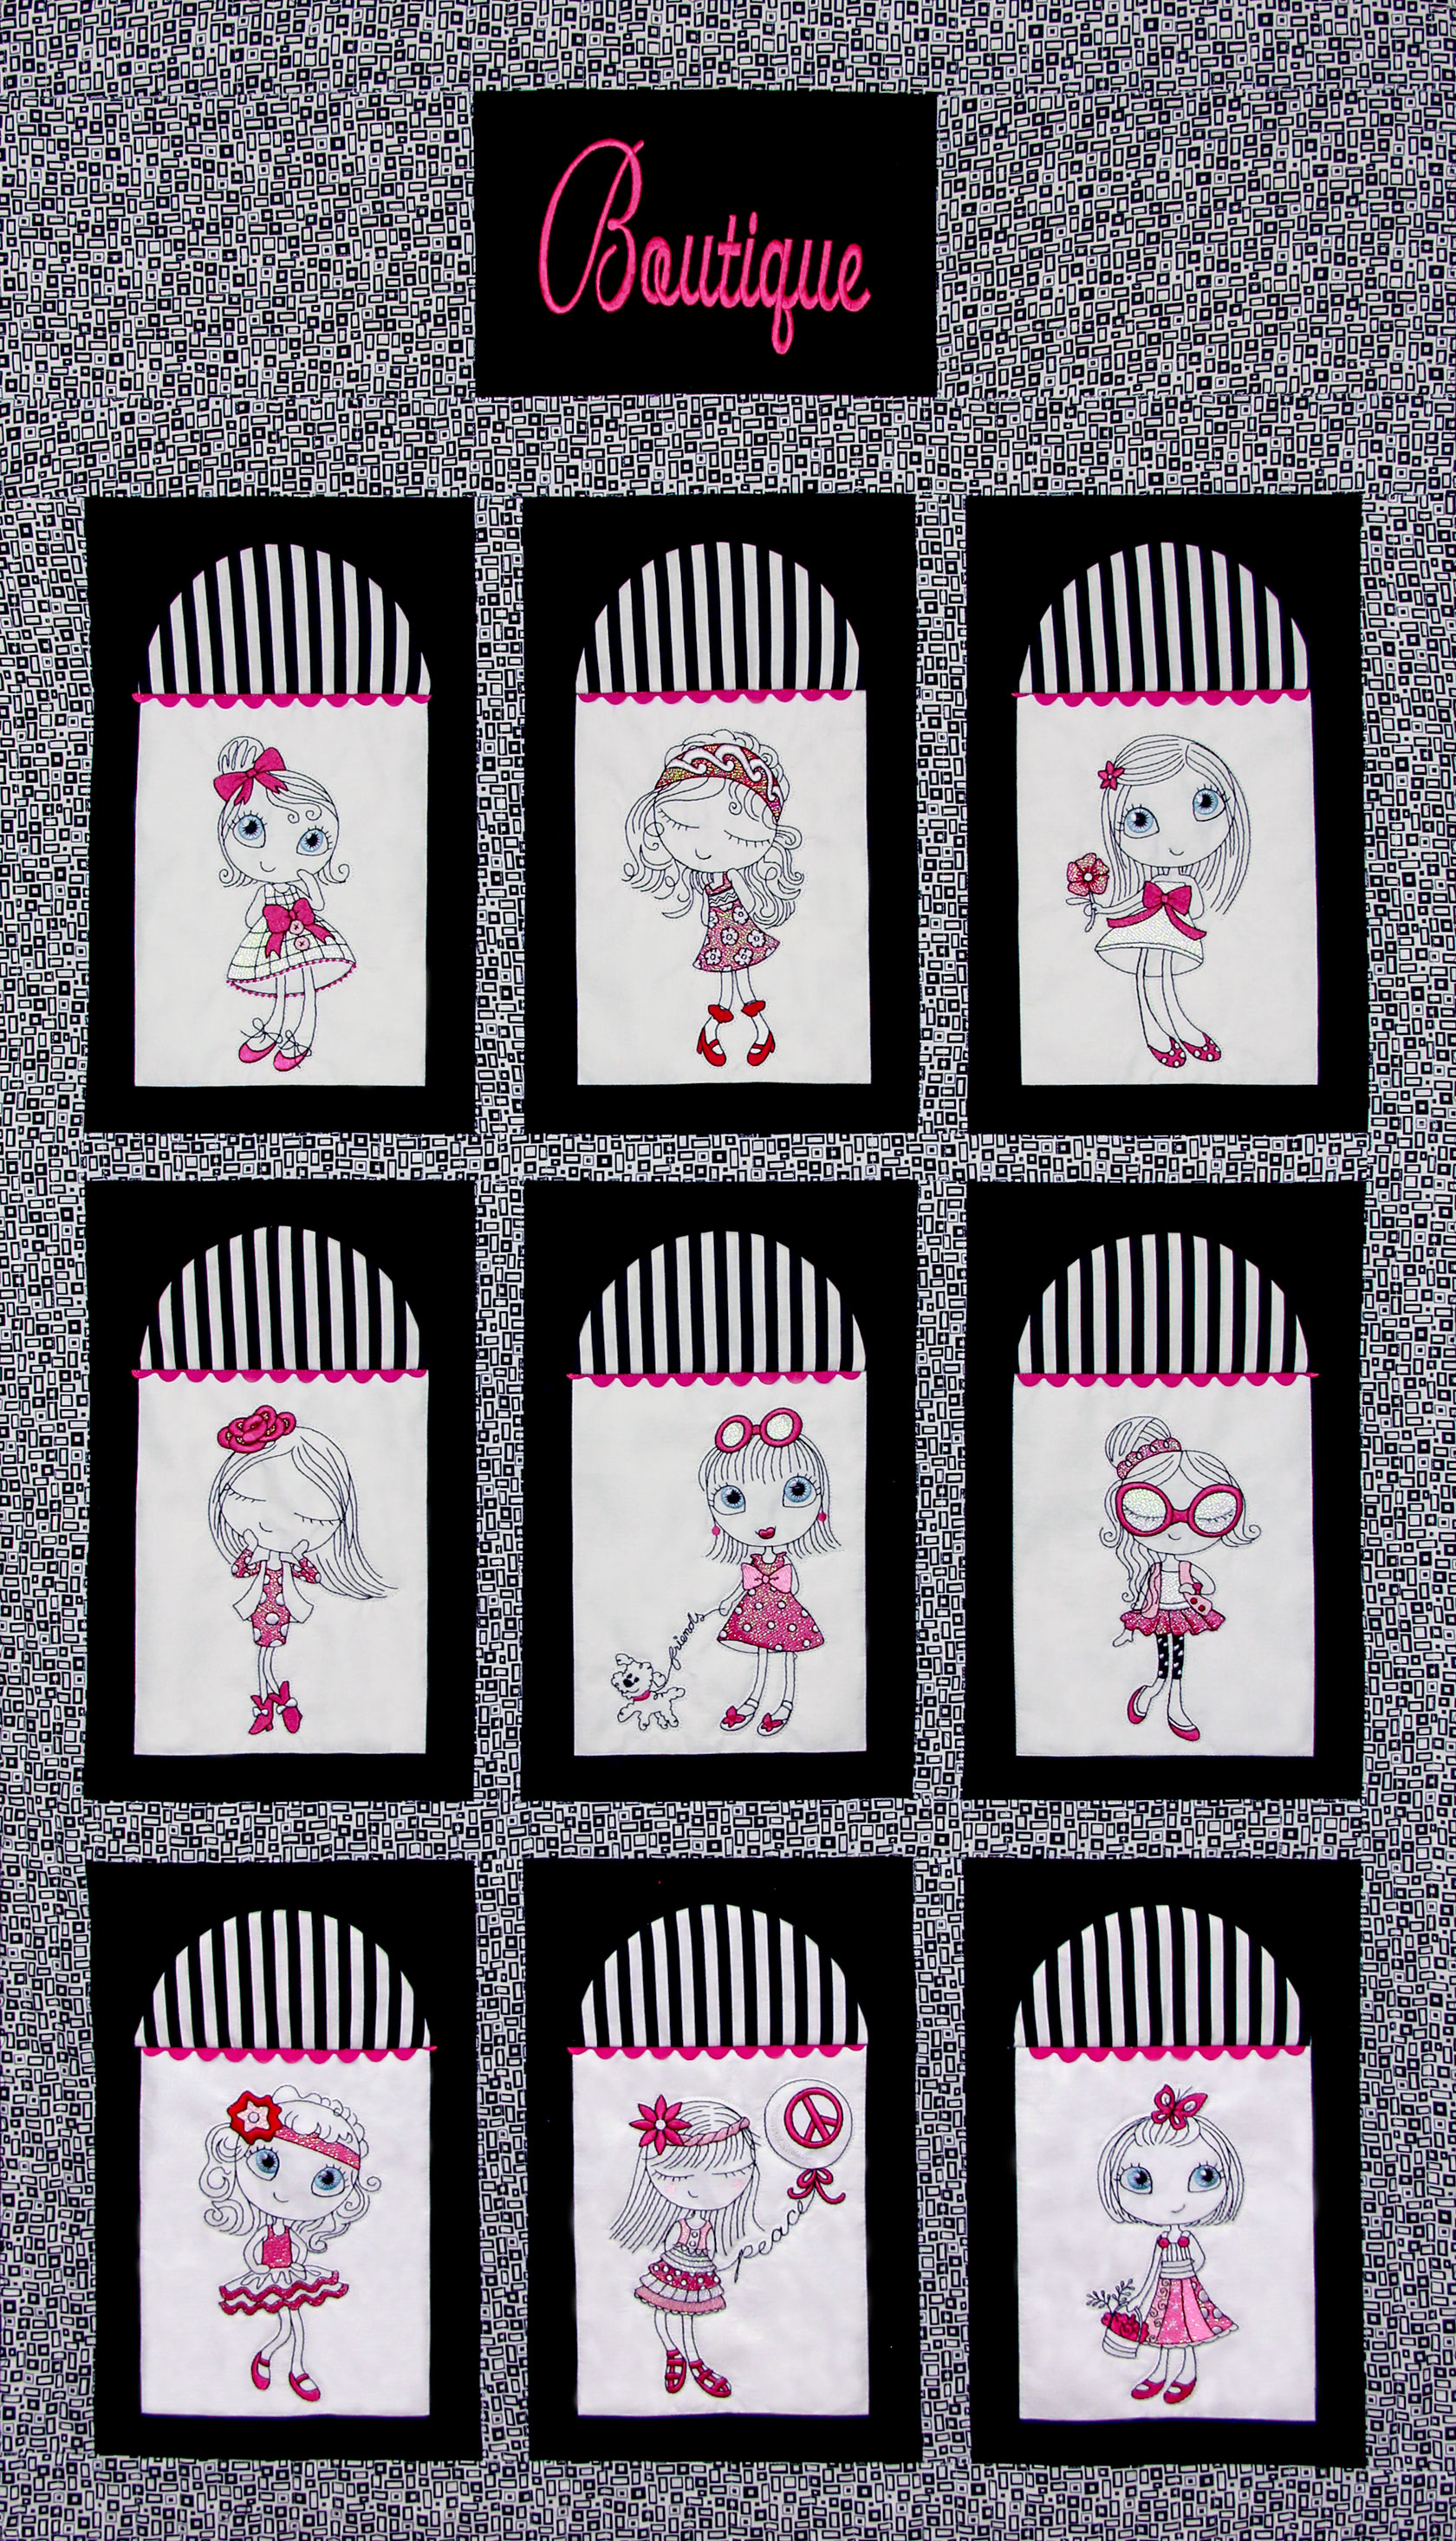 Unique Chic Boutique Quilt Pattern - PDF Pattern for quilt featuring Mylar Unique Chic 1 embroidery design collection from Purely Gates. This pattern will work with most any embroidery design collection. Finished size is 30.5